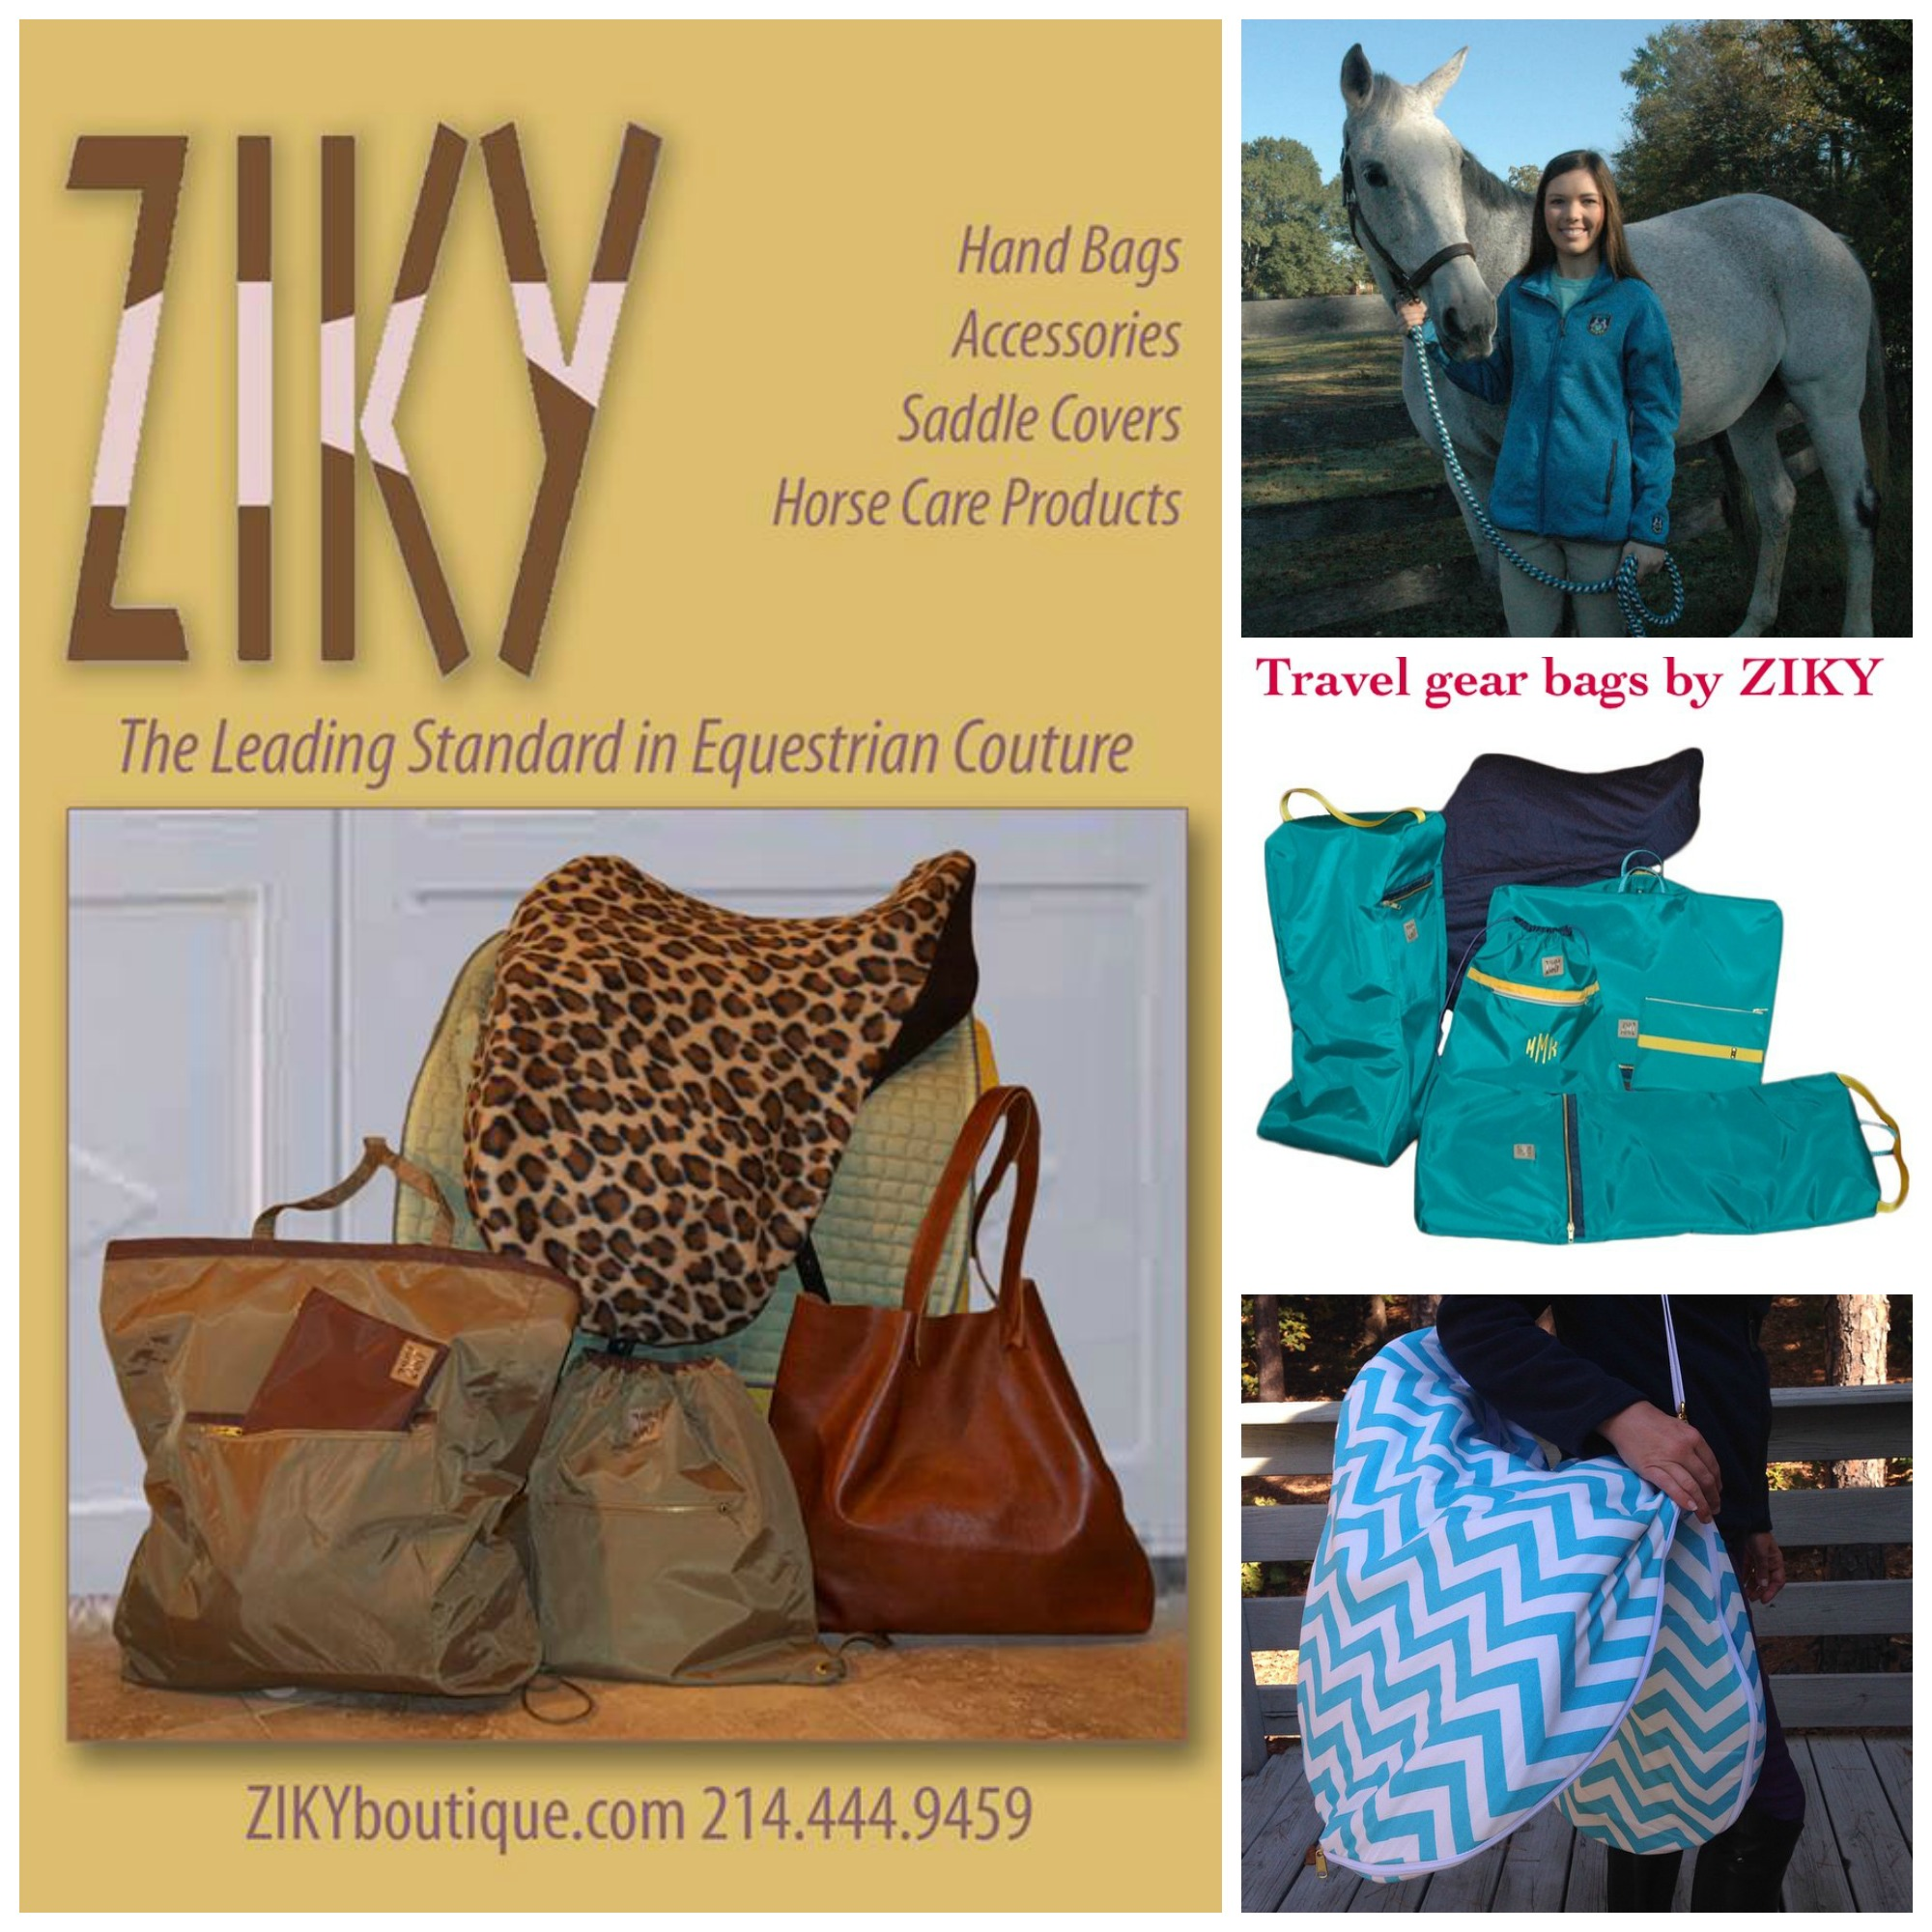 Day Three: Ziky Boutique | Velvet Rider